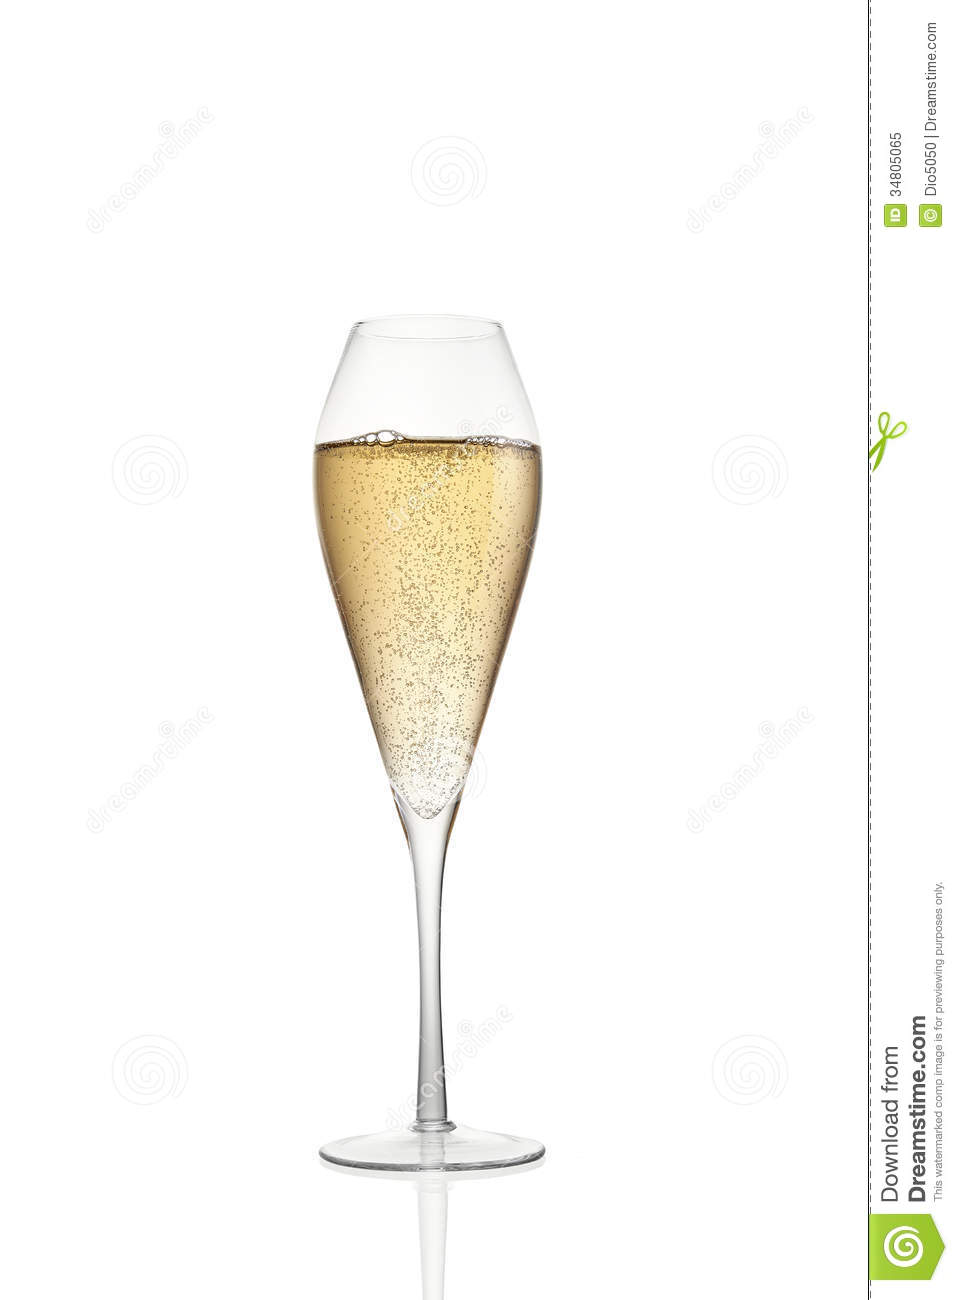 2014 Glass Of Champagne Royalty Free Stock Photo - Image ...